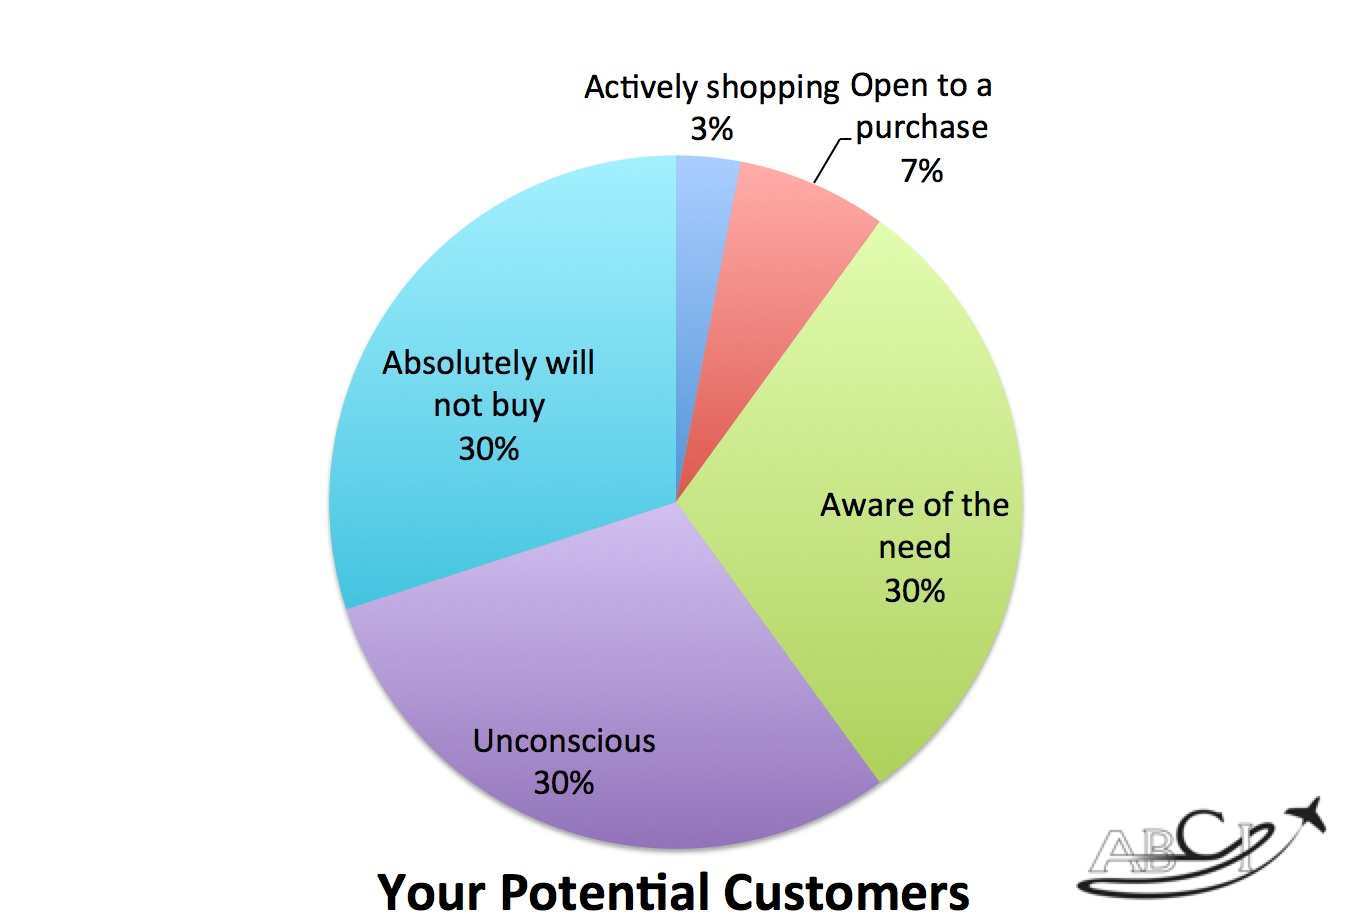 a seminar, webinar or workshop can reach more of your potential customers